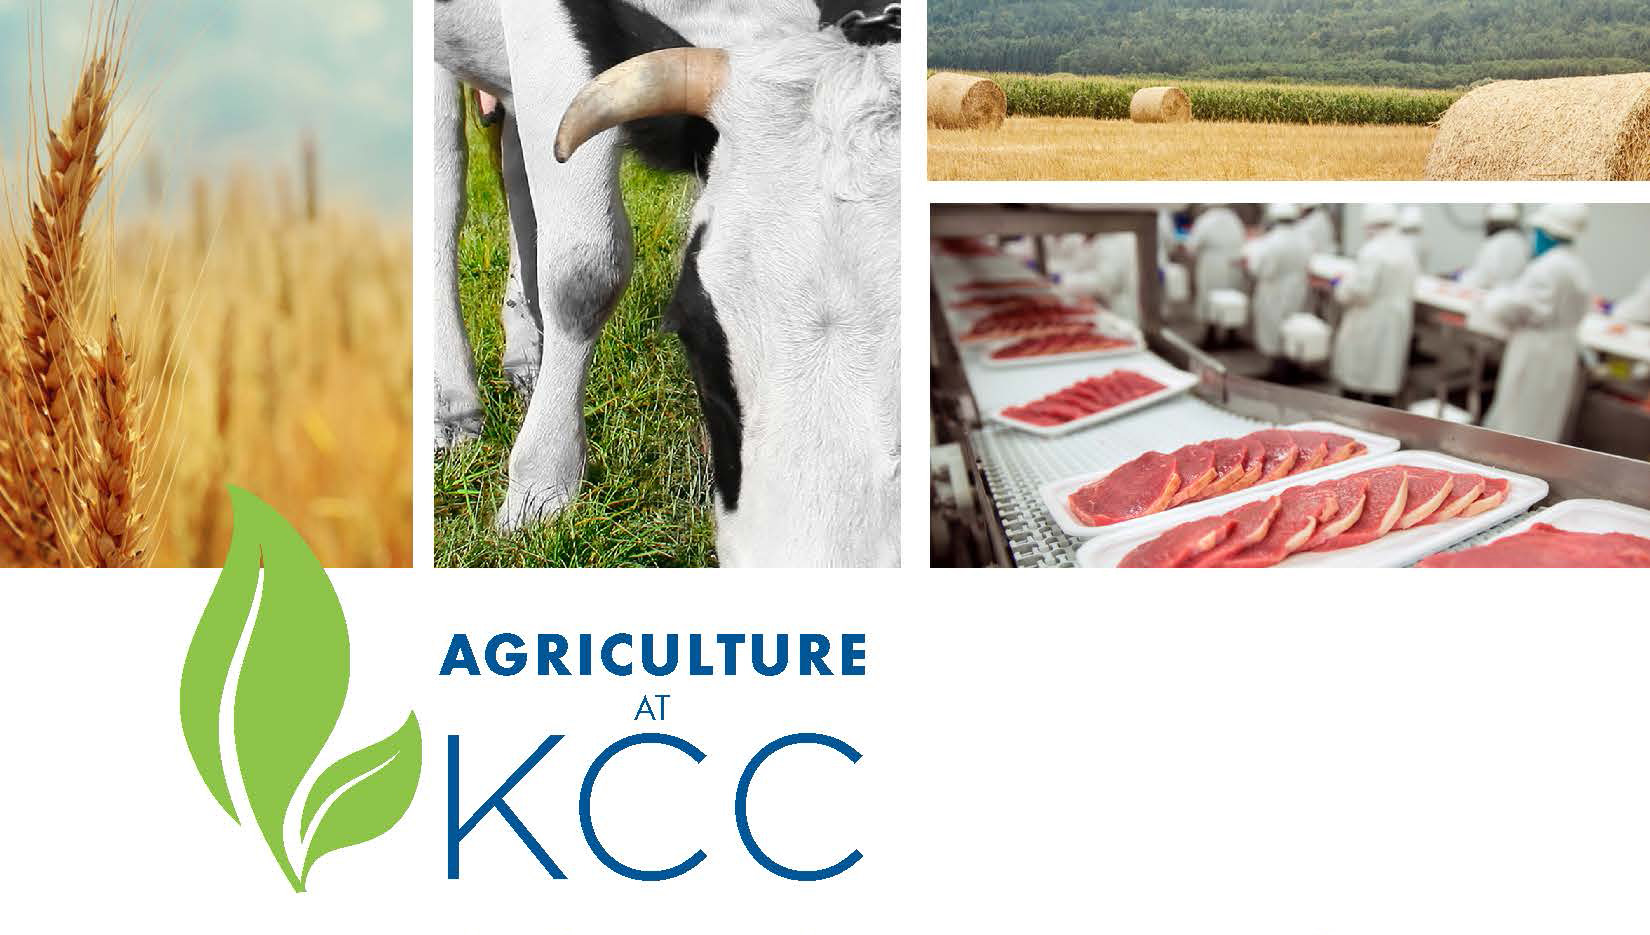 Closeup photos of wheat, a cow and processed meat on a promotional slide for KCC's Agricultural Operations Program.